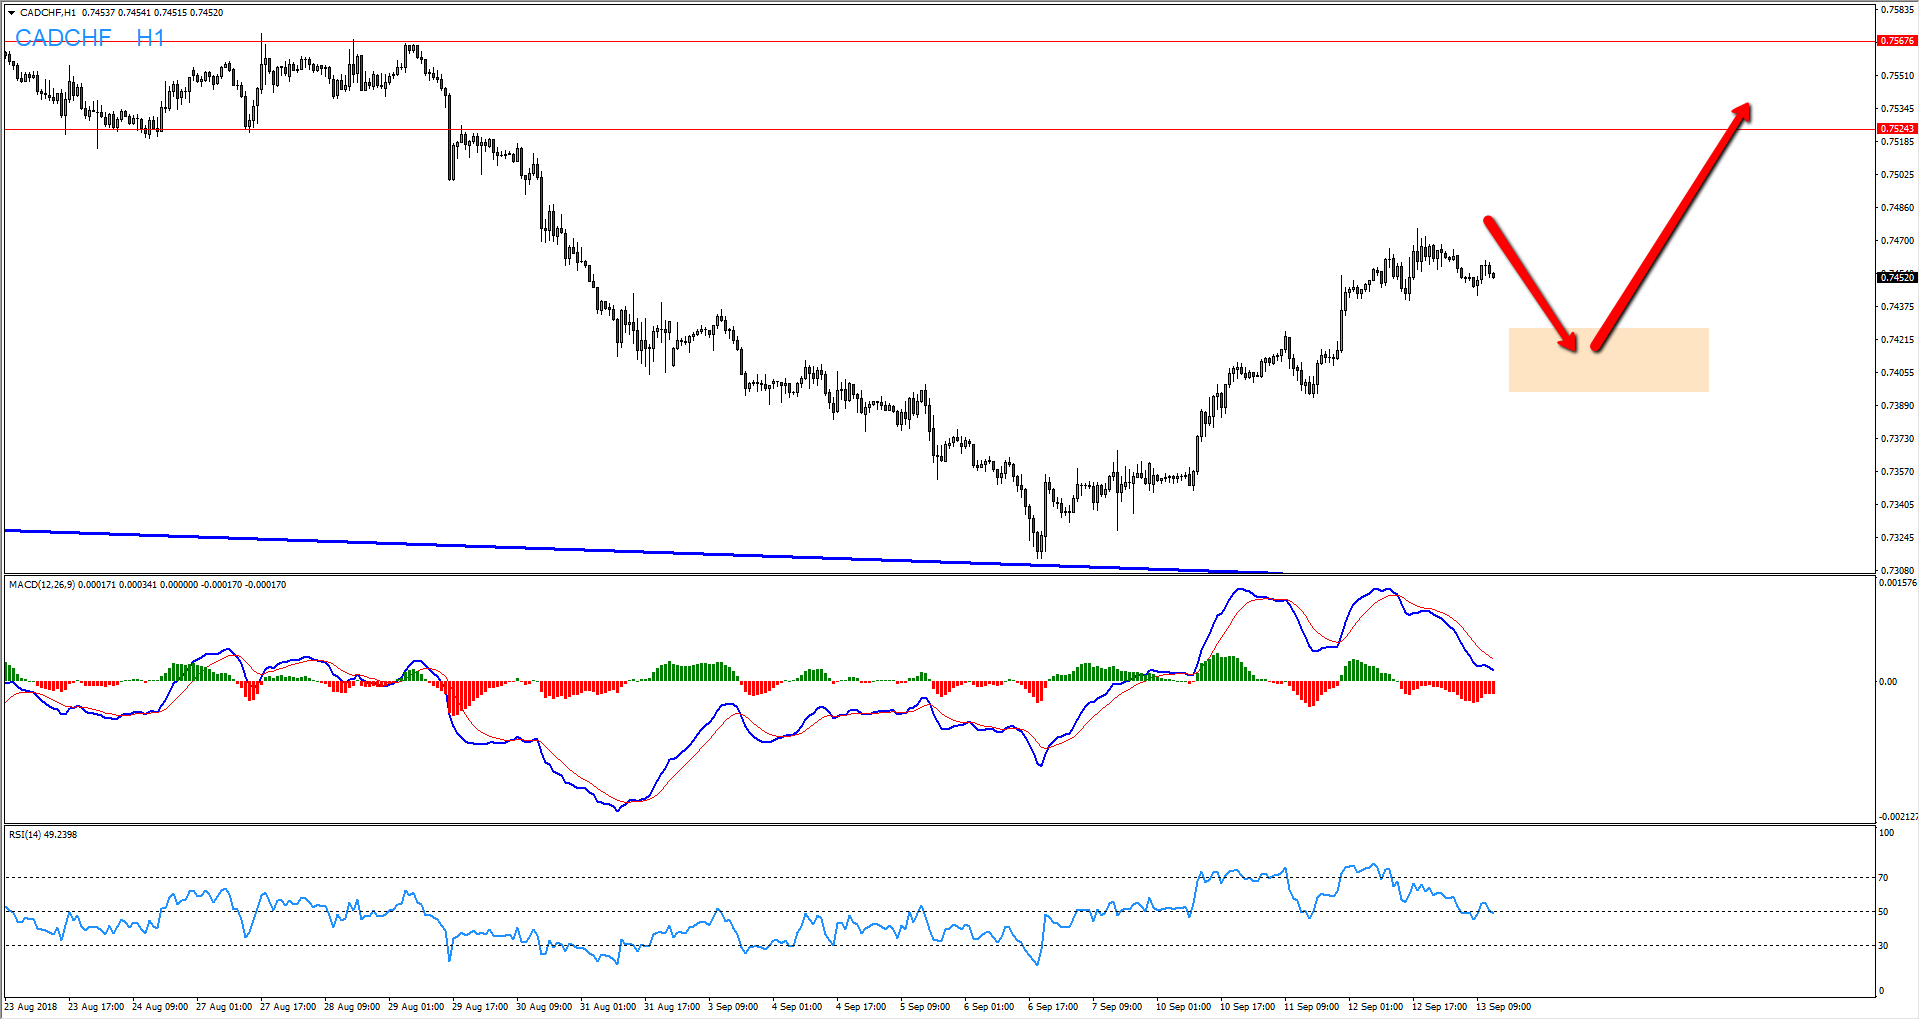 CADCHF Bullish Opportunity After Pullbacks